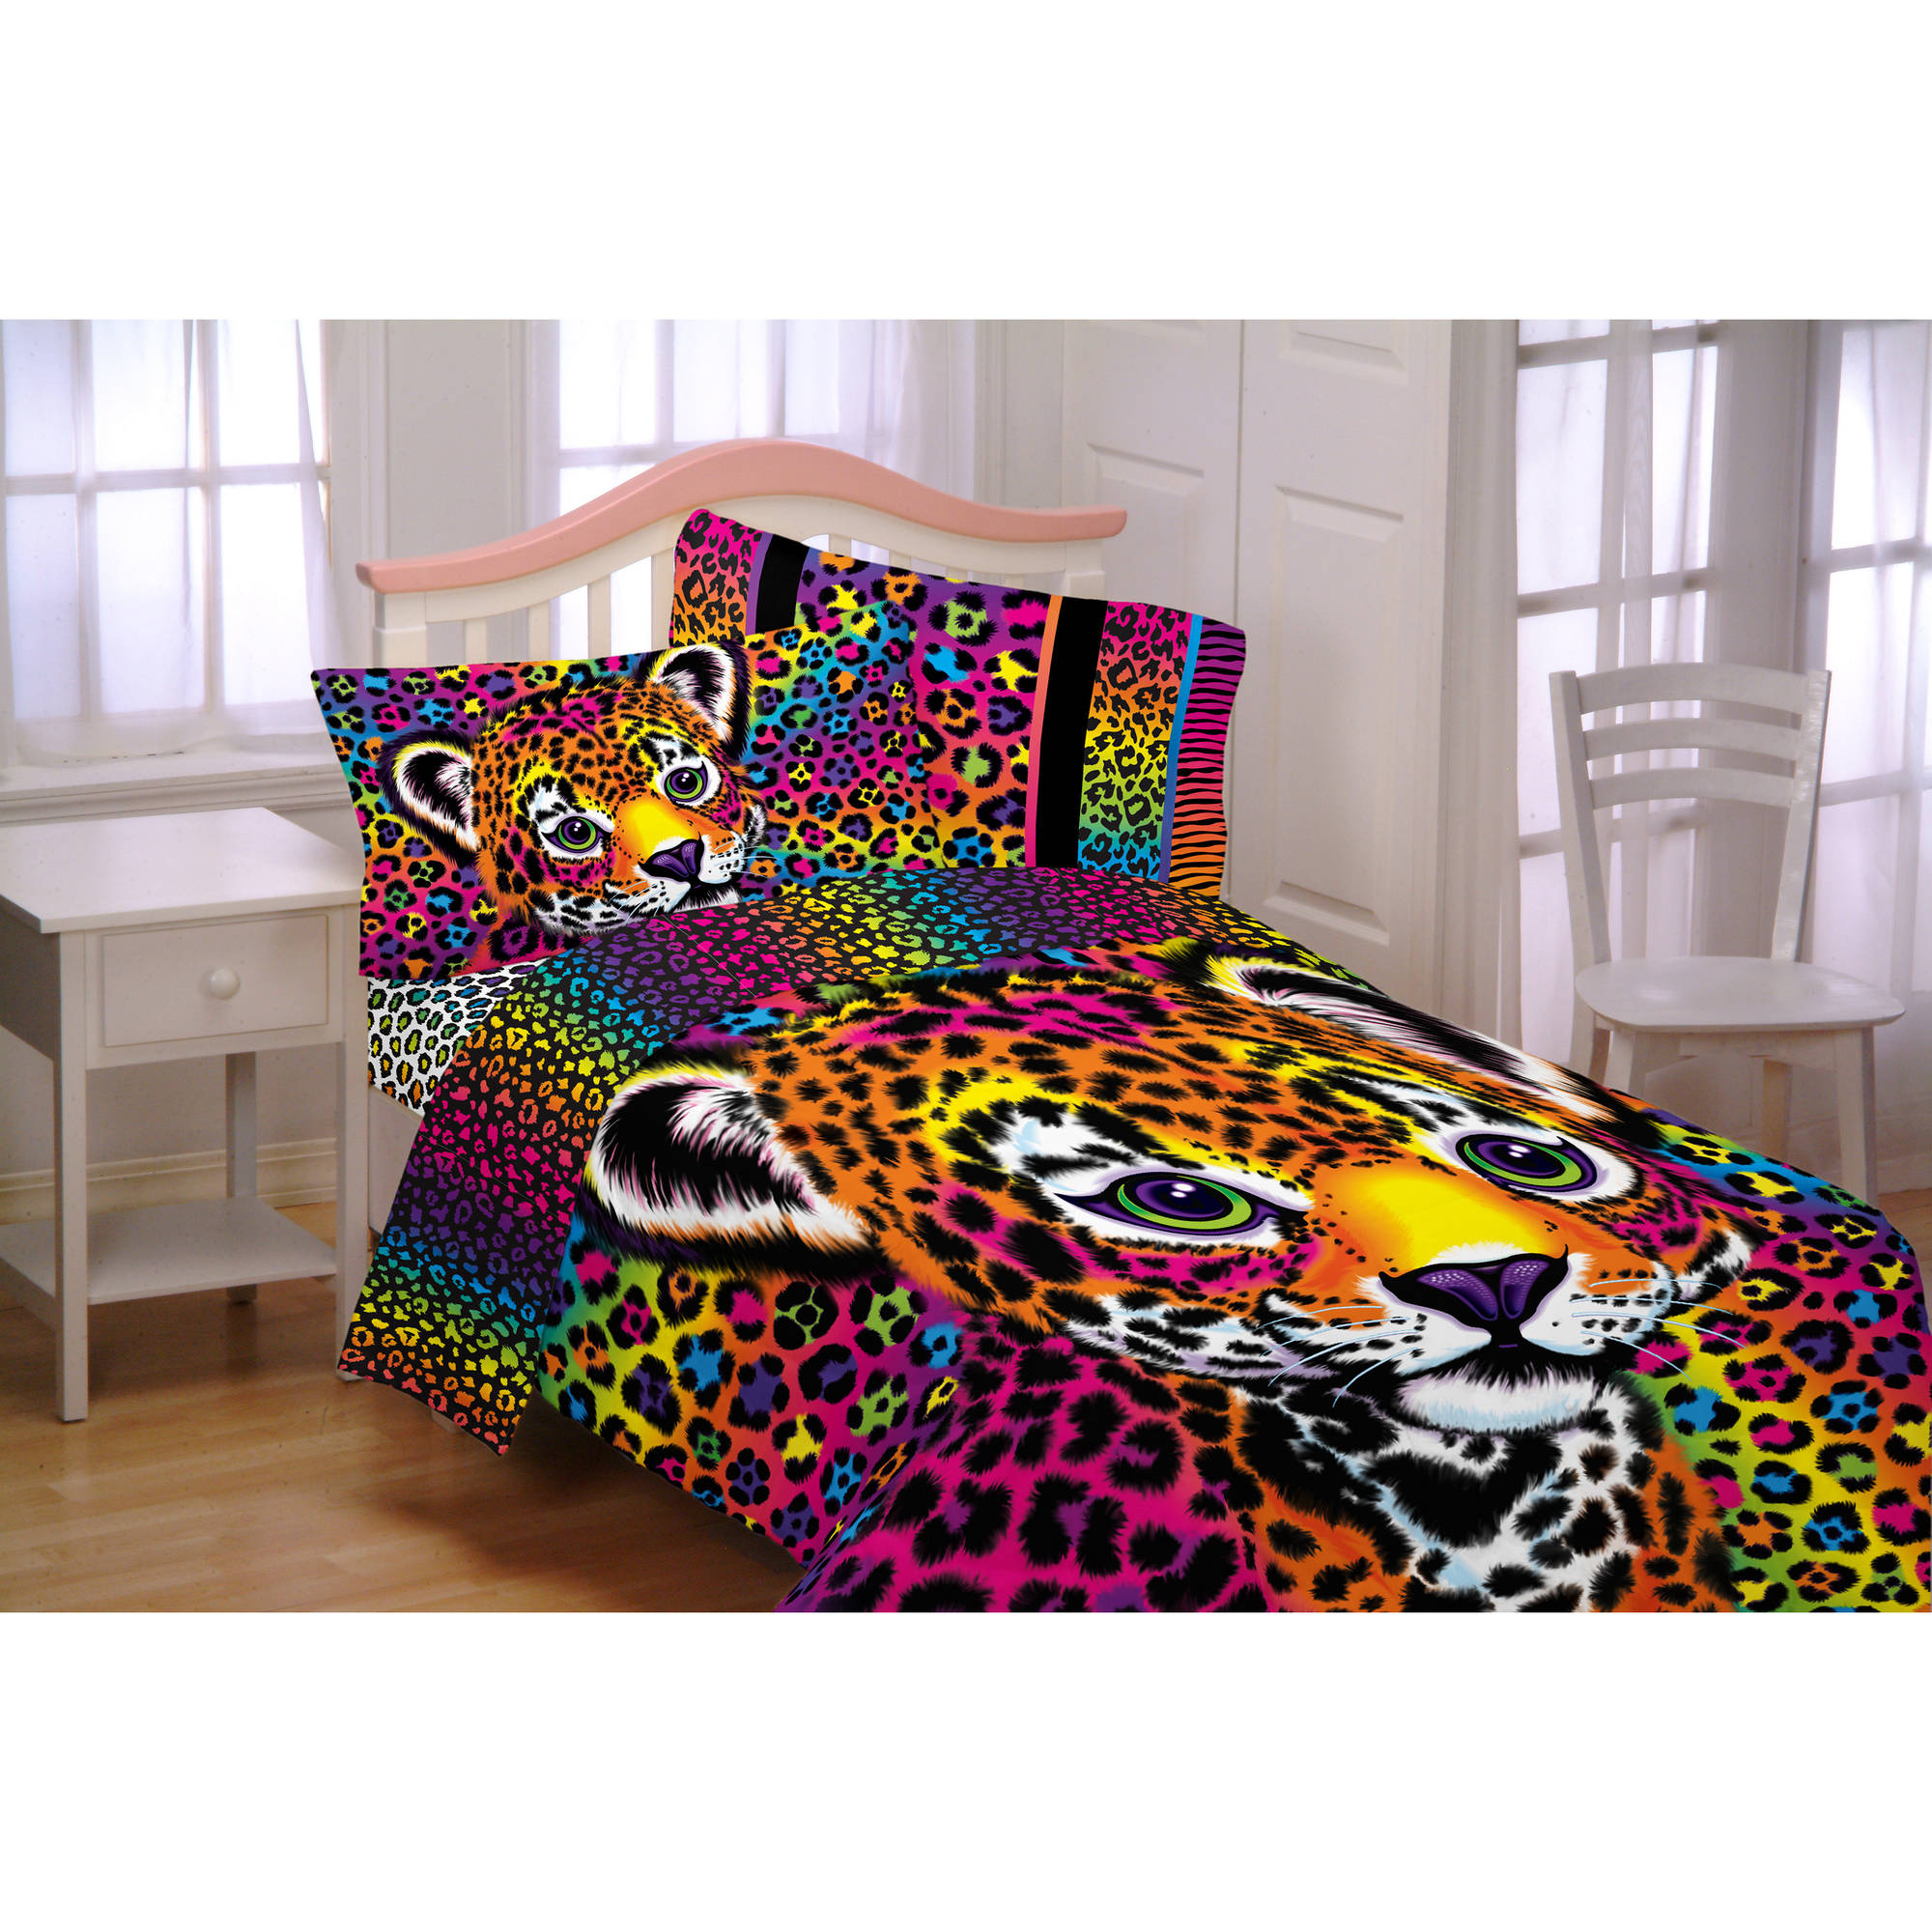 Bedding sets for teenage girls walmart - Lisa Frank Wildside Microfiber Reversible Twin Full Bedding Comforter